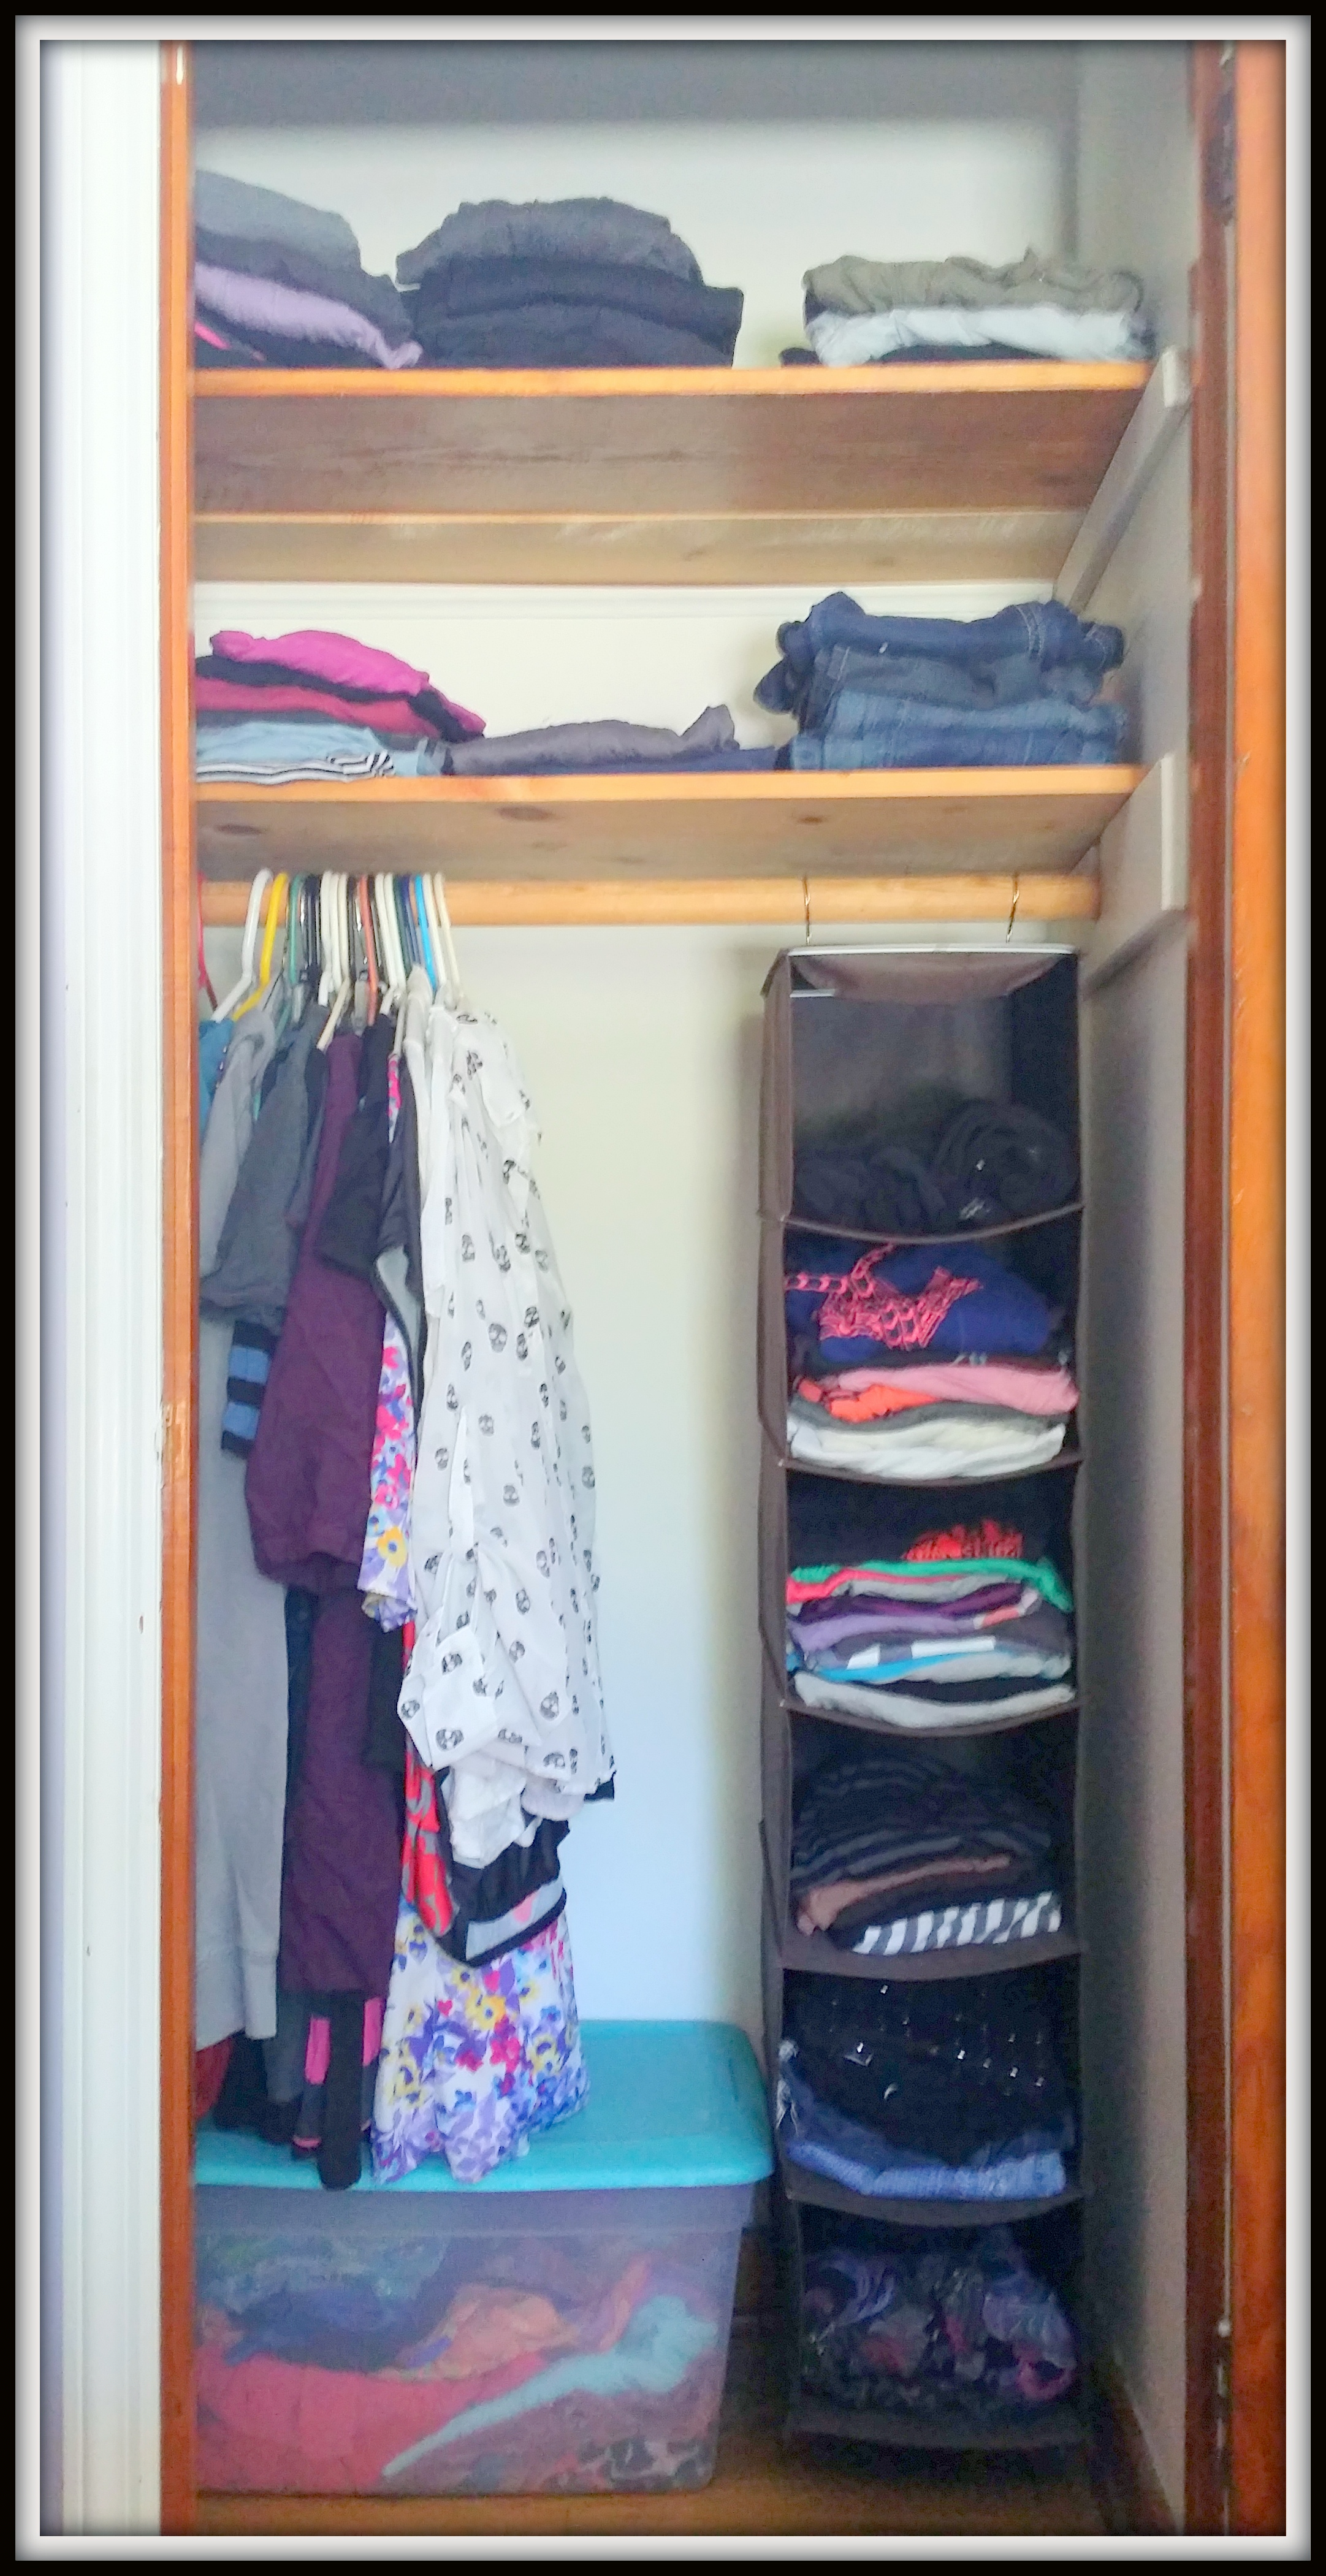 How To Clean Your Closet clean your closet to clear your mind – wizard of homes